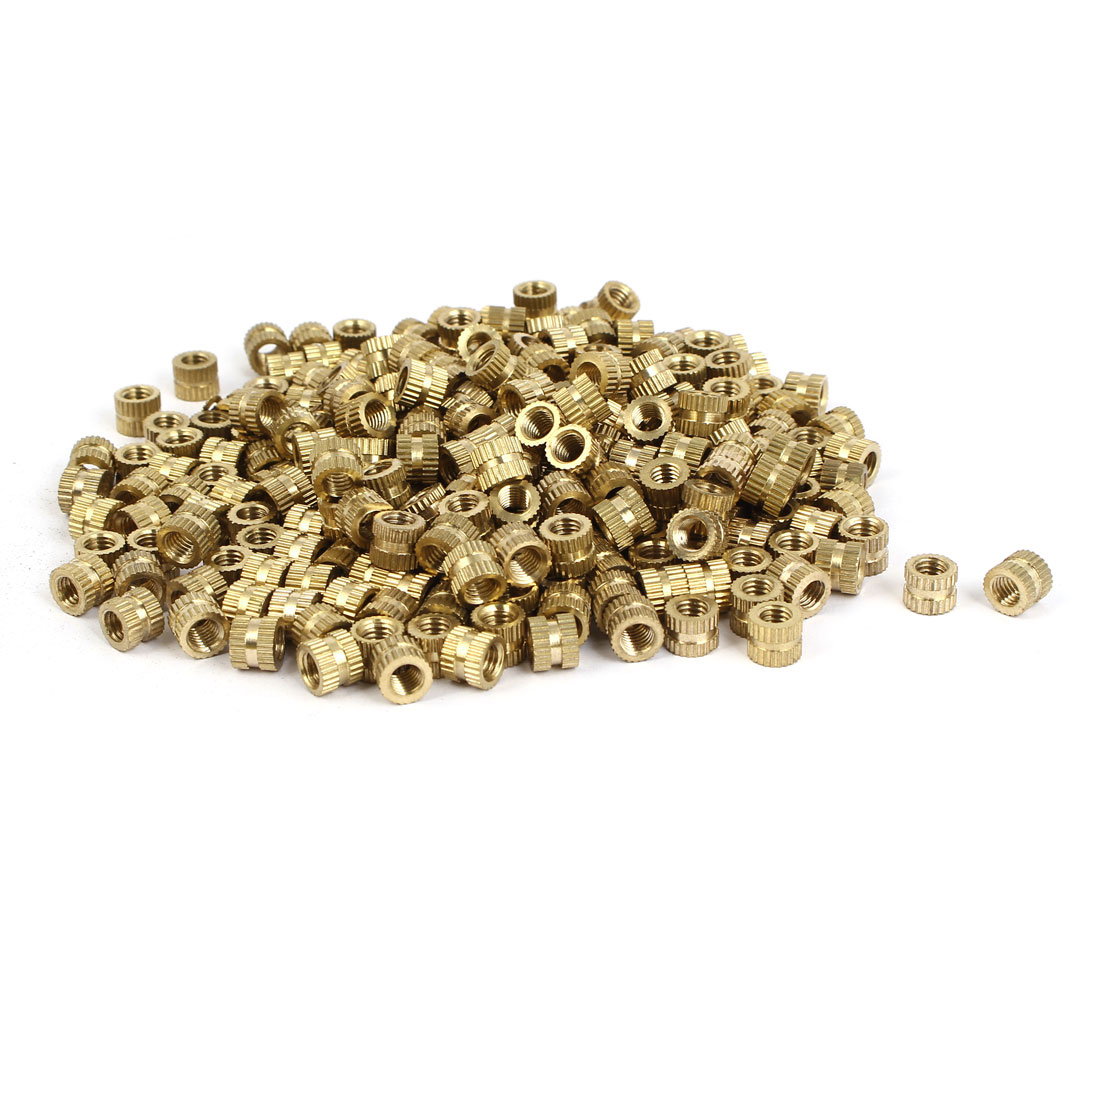 M5 x 6mm Brass Cylinder Injection Molding Knurled Threaded Insert Nuts 500PCS